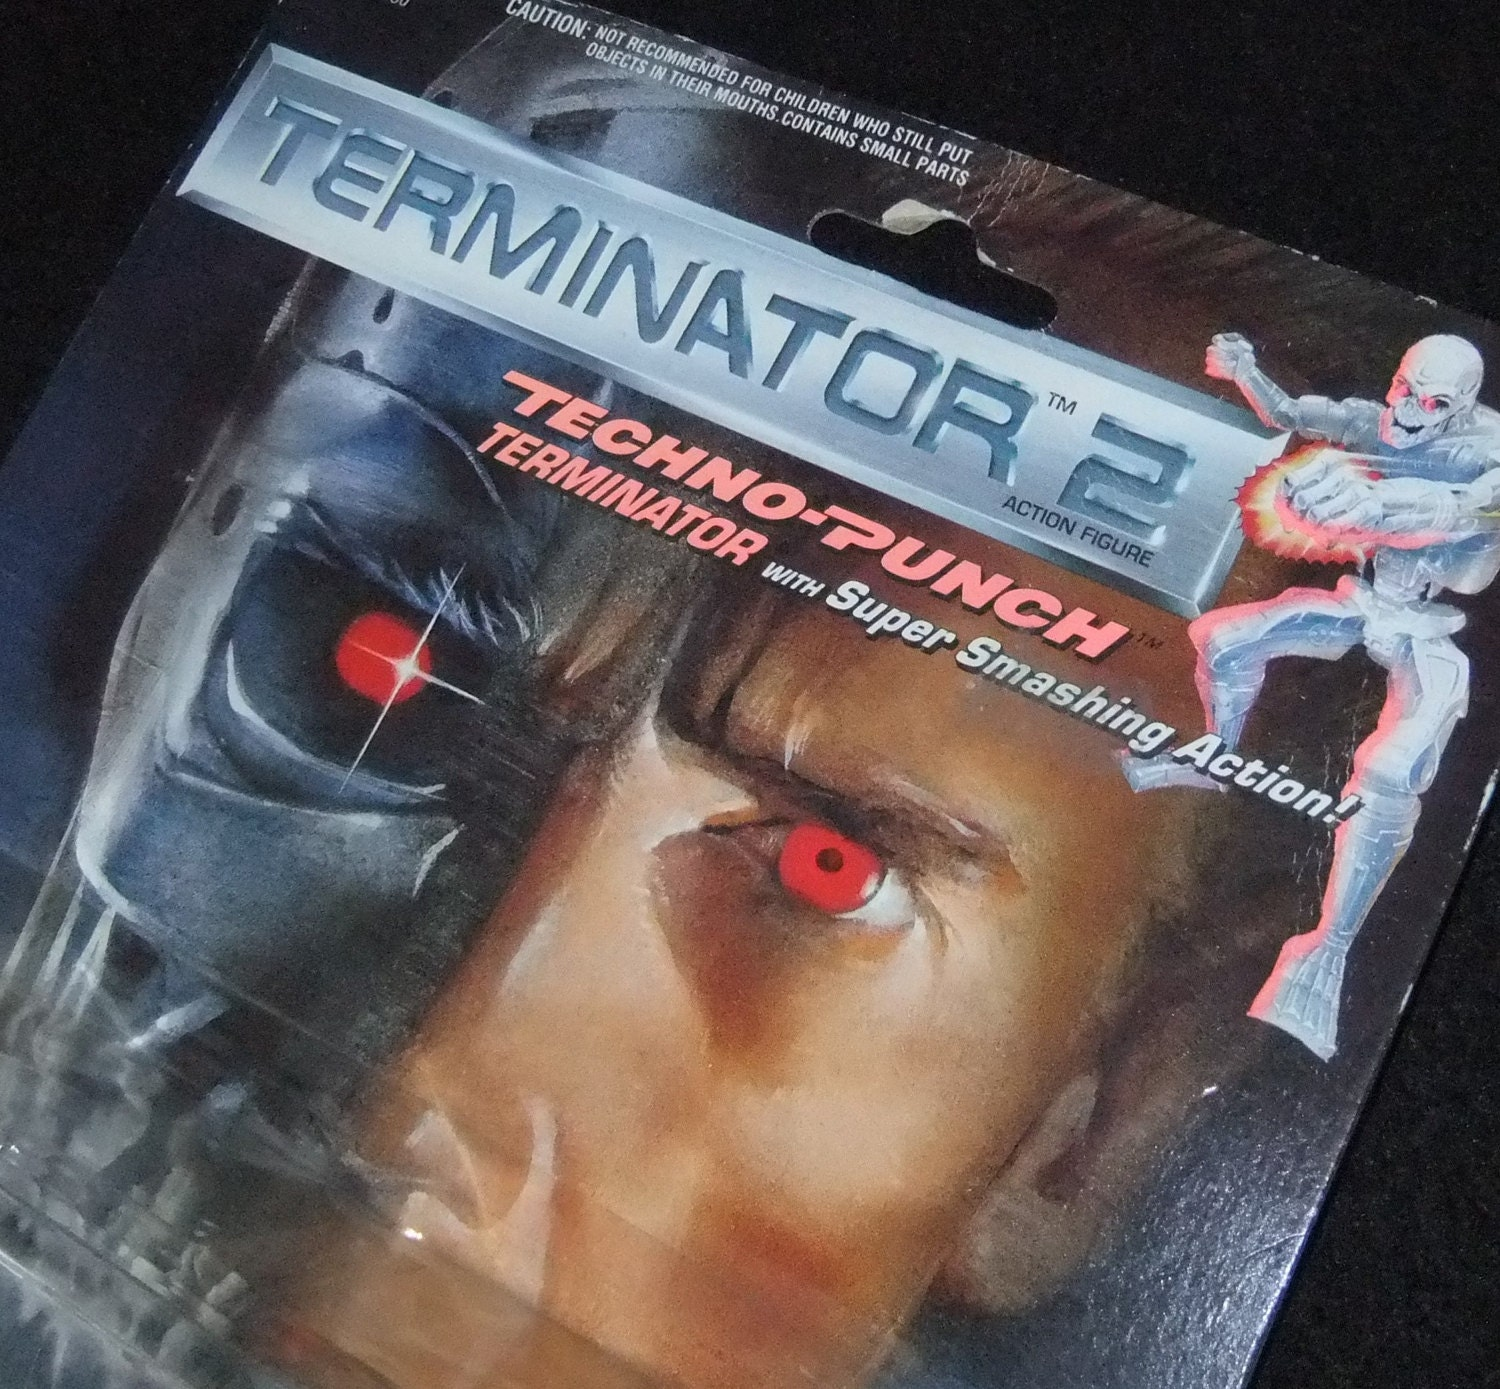 Terminator 2 1991 TechnoPunch Terminator Arnold Schwarzenegger action figure carded by Kenner